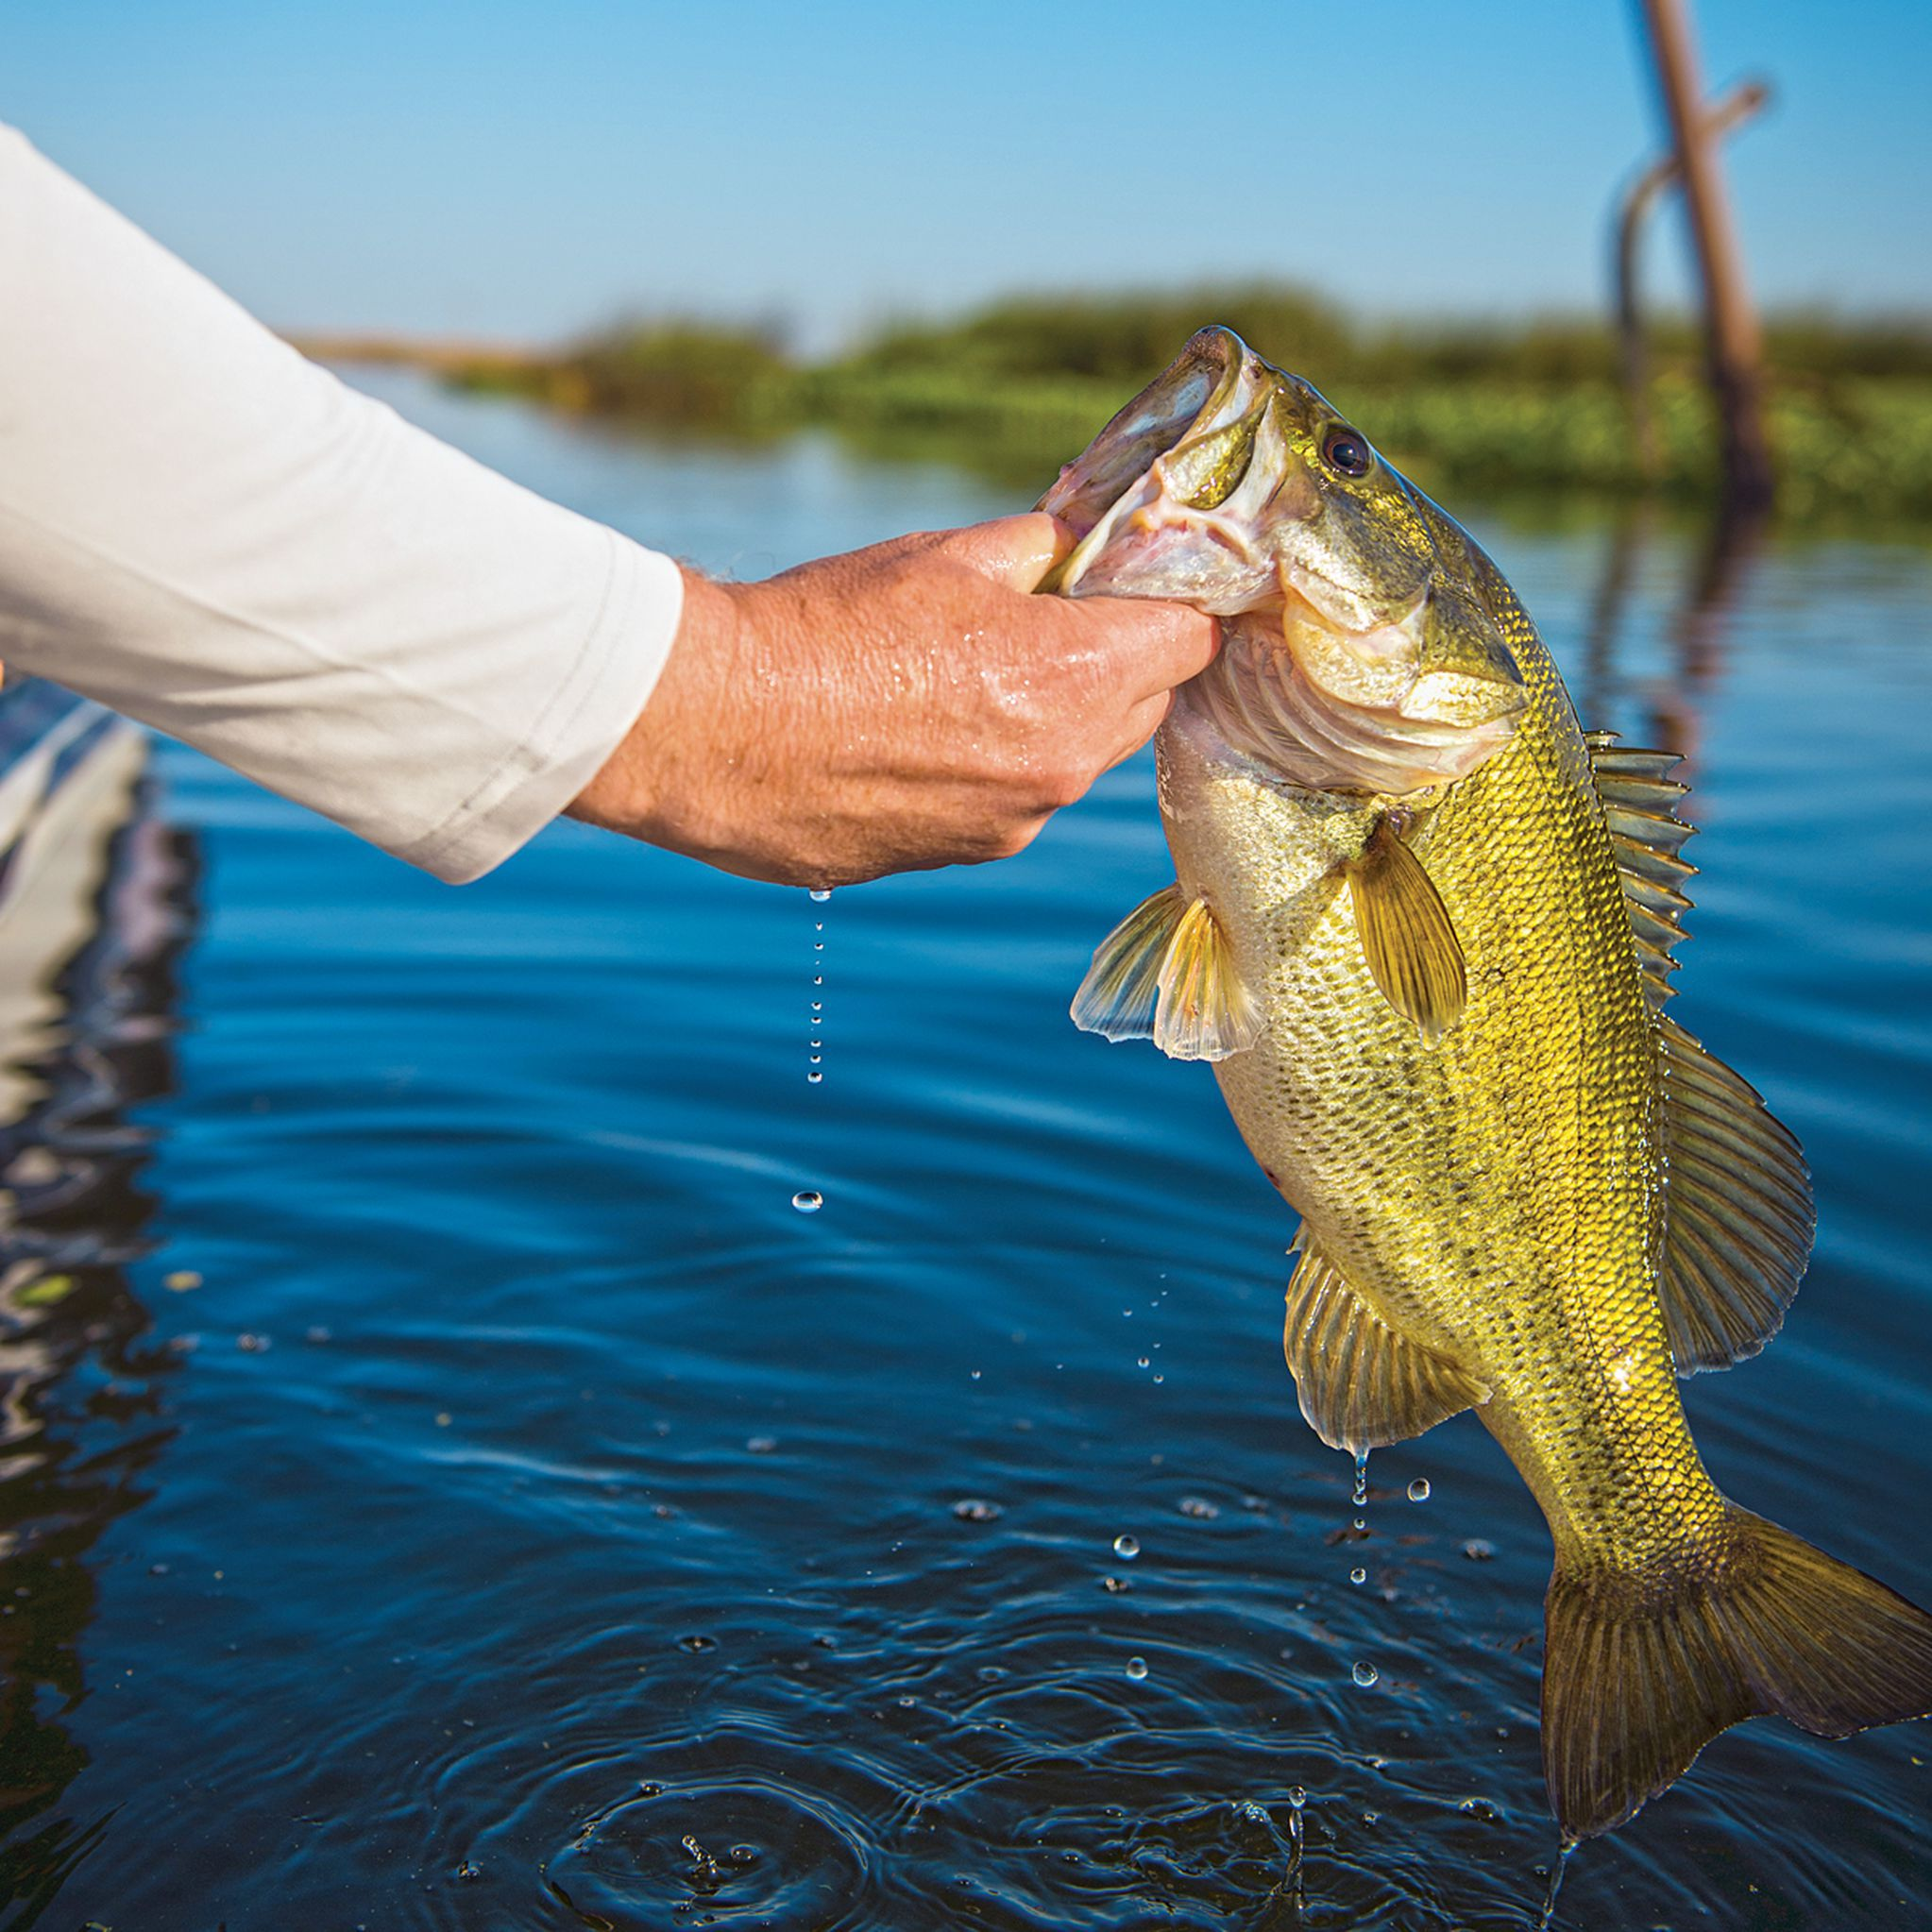 25 Tips For Catching A 10 Pound Bass Field Stream